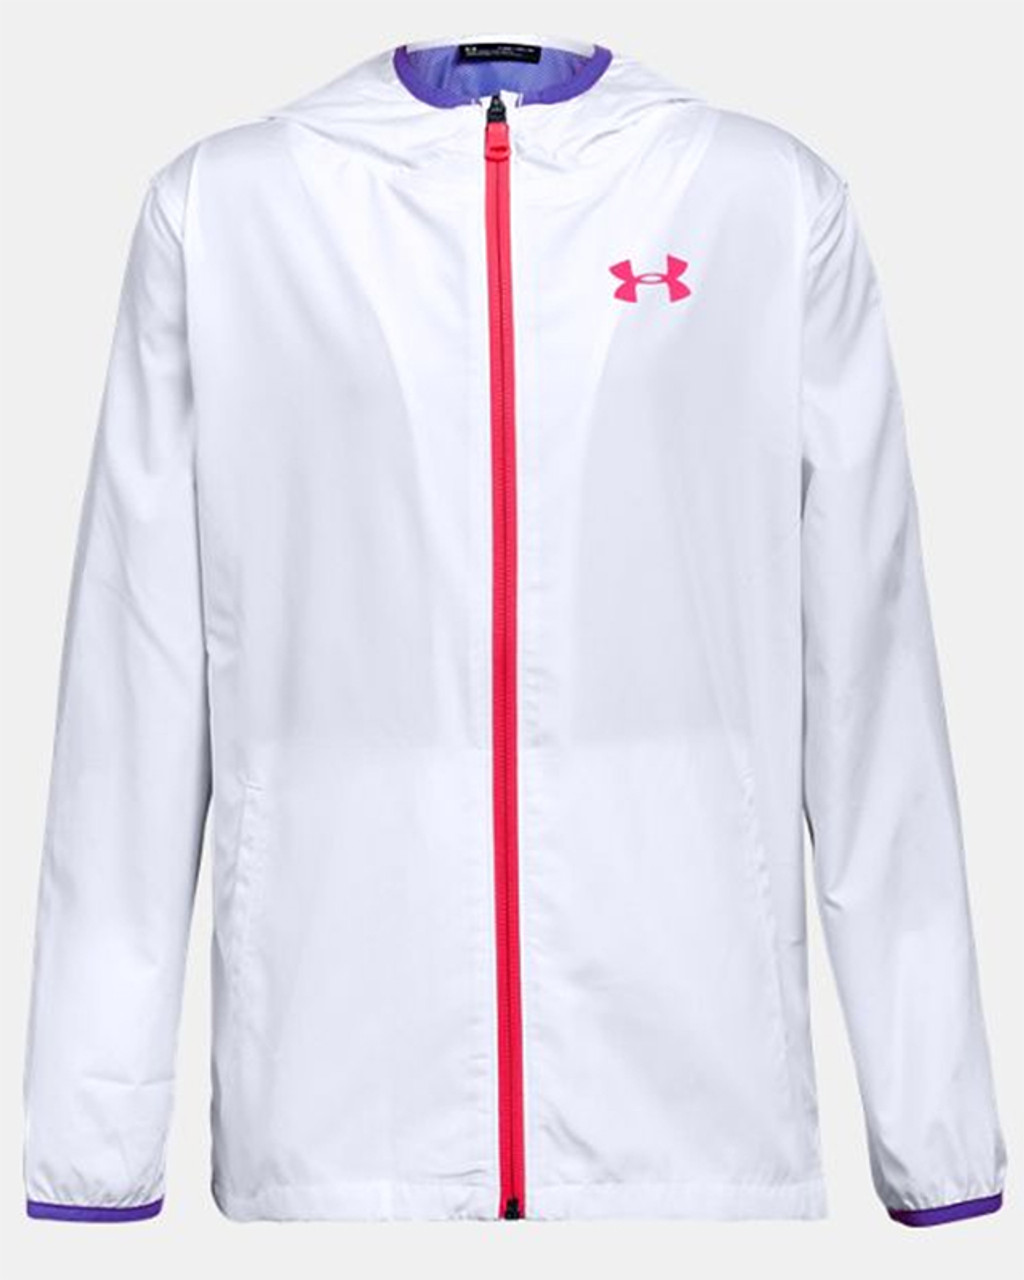 Under Armour Girls Sackpack Jacket